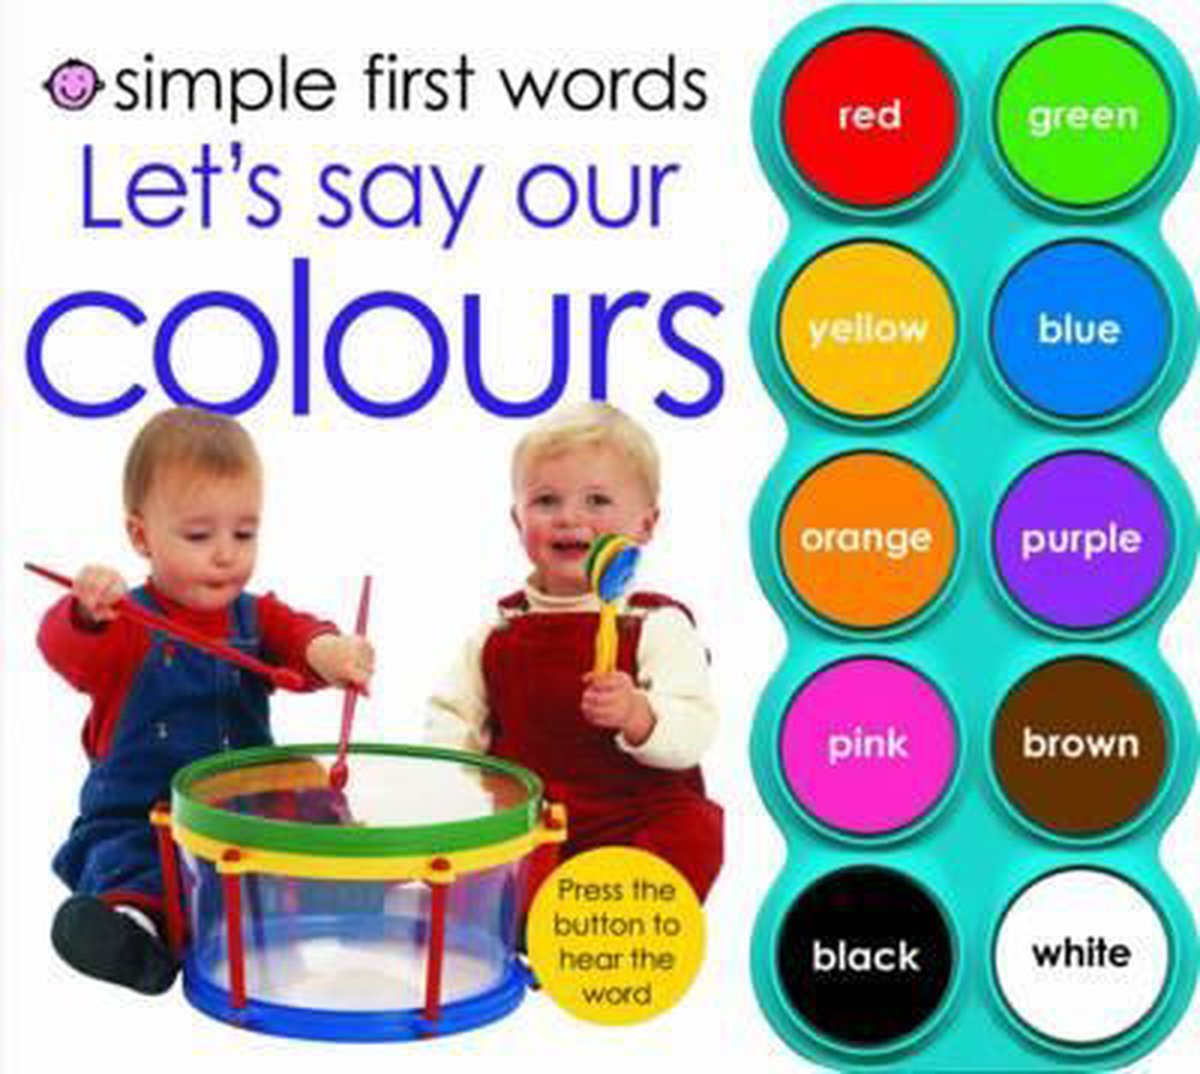 Let's Say Our Colours